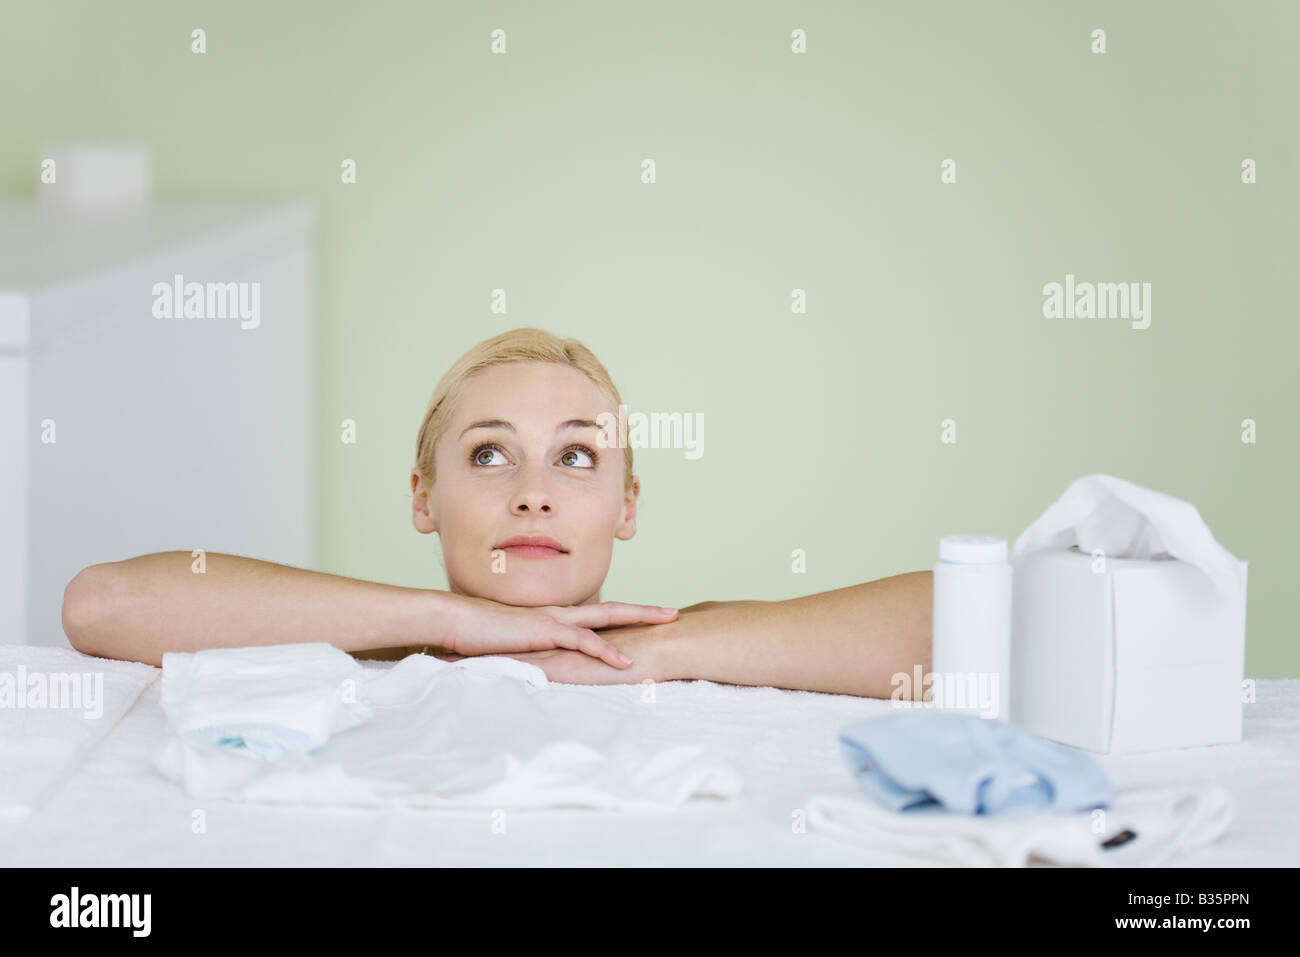 Woman in nursery, resting head on arms, looking up, smiling - Stock Image